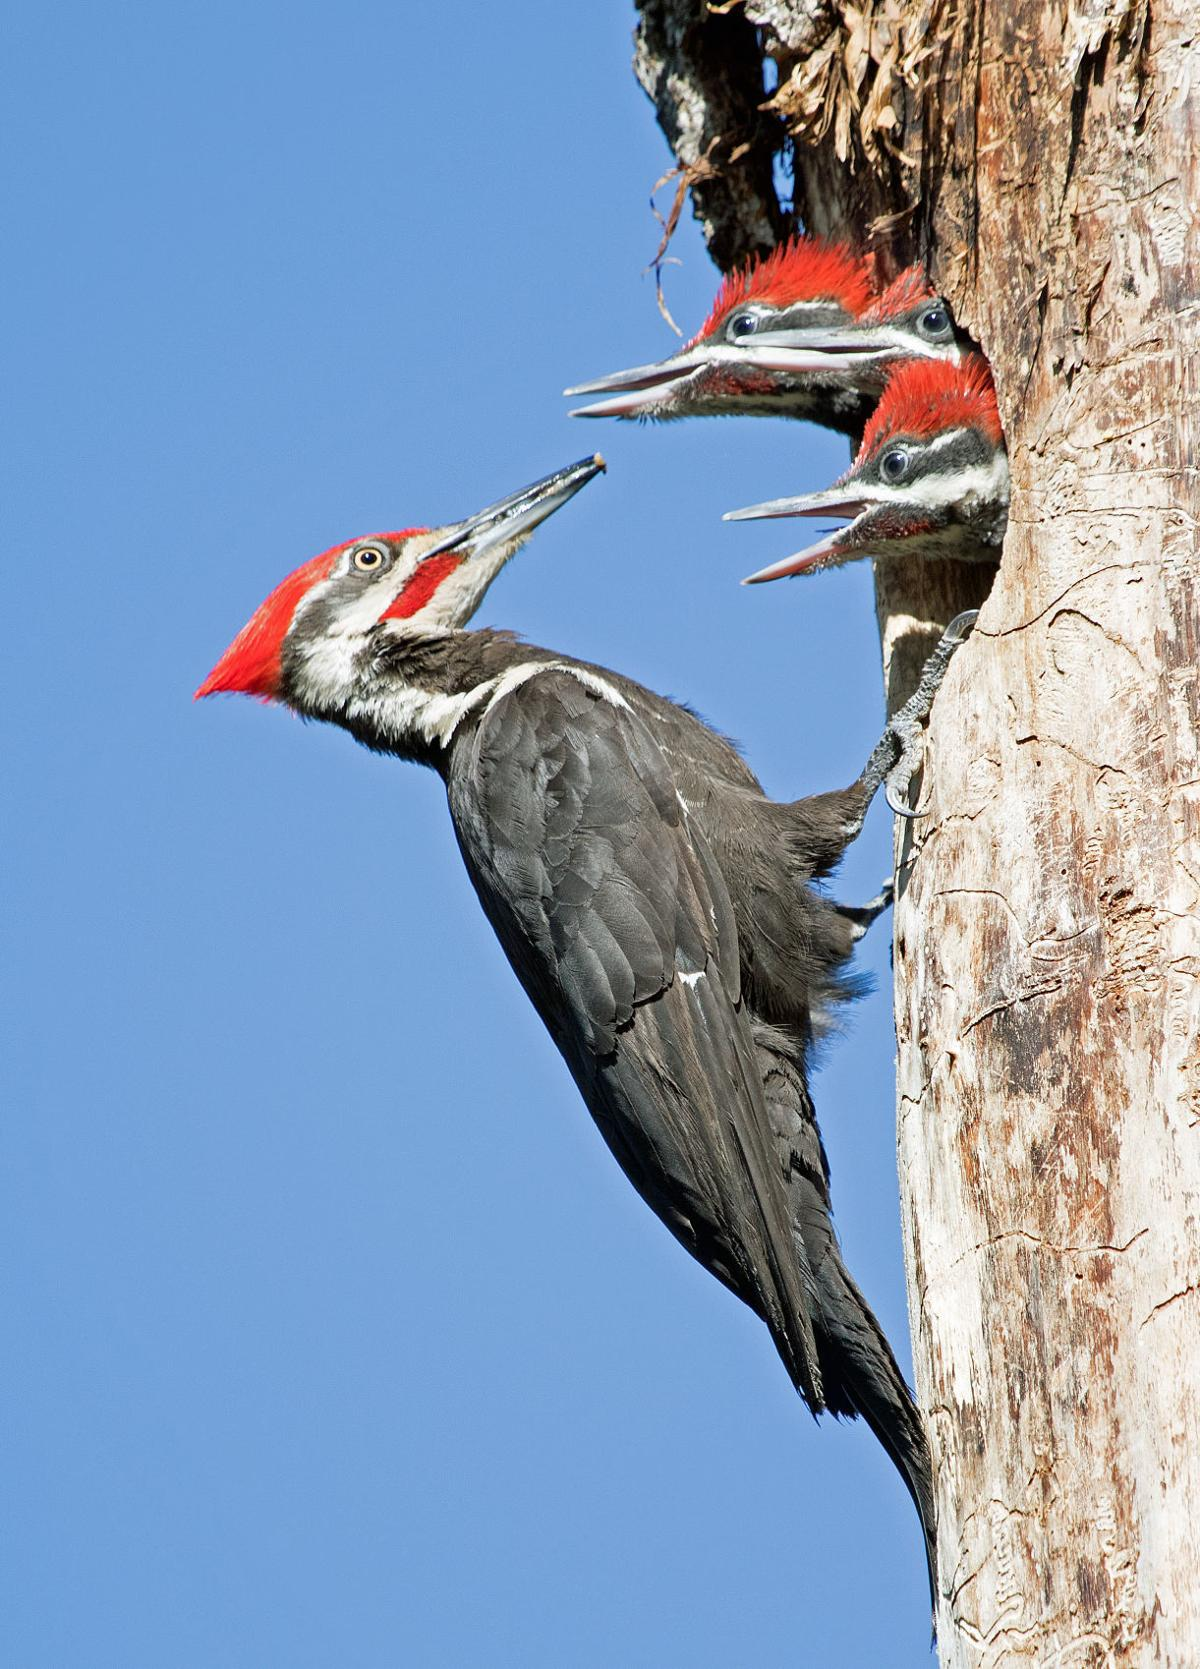 Pileated woodpeck